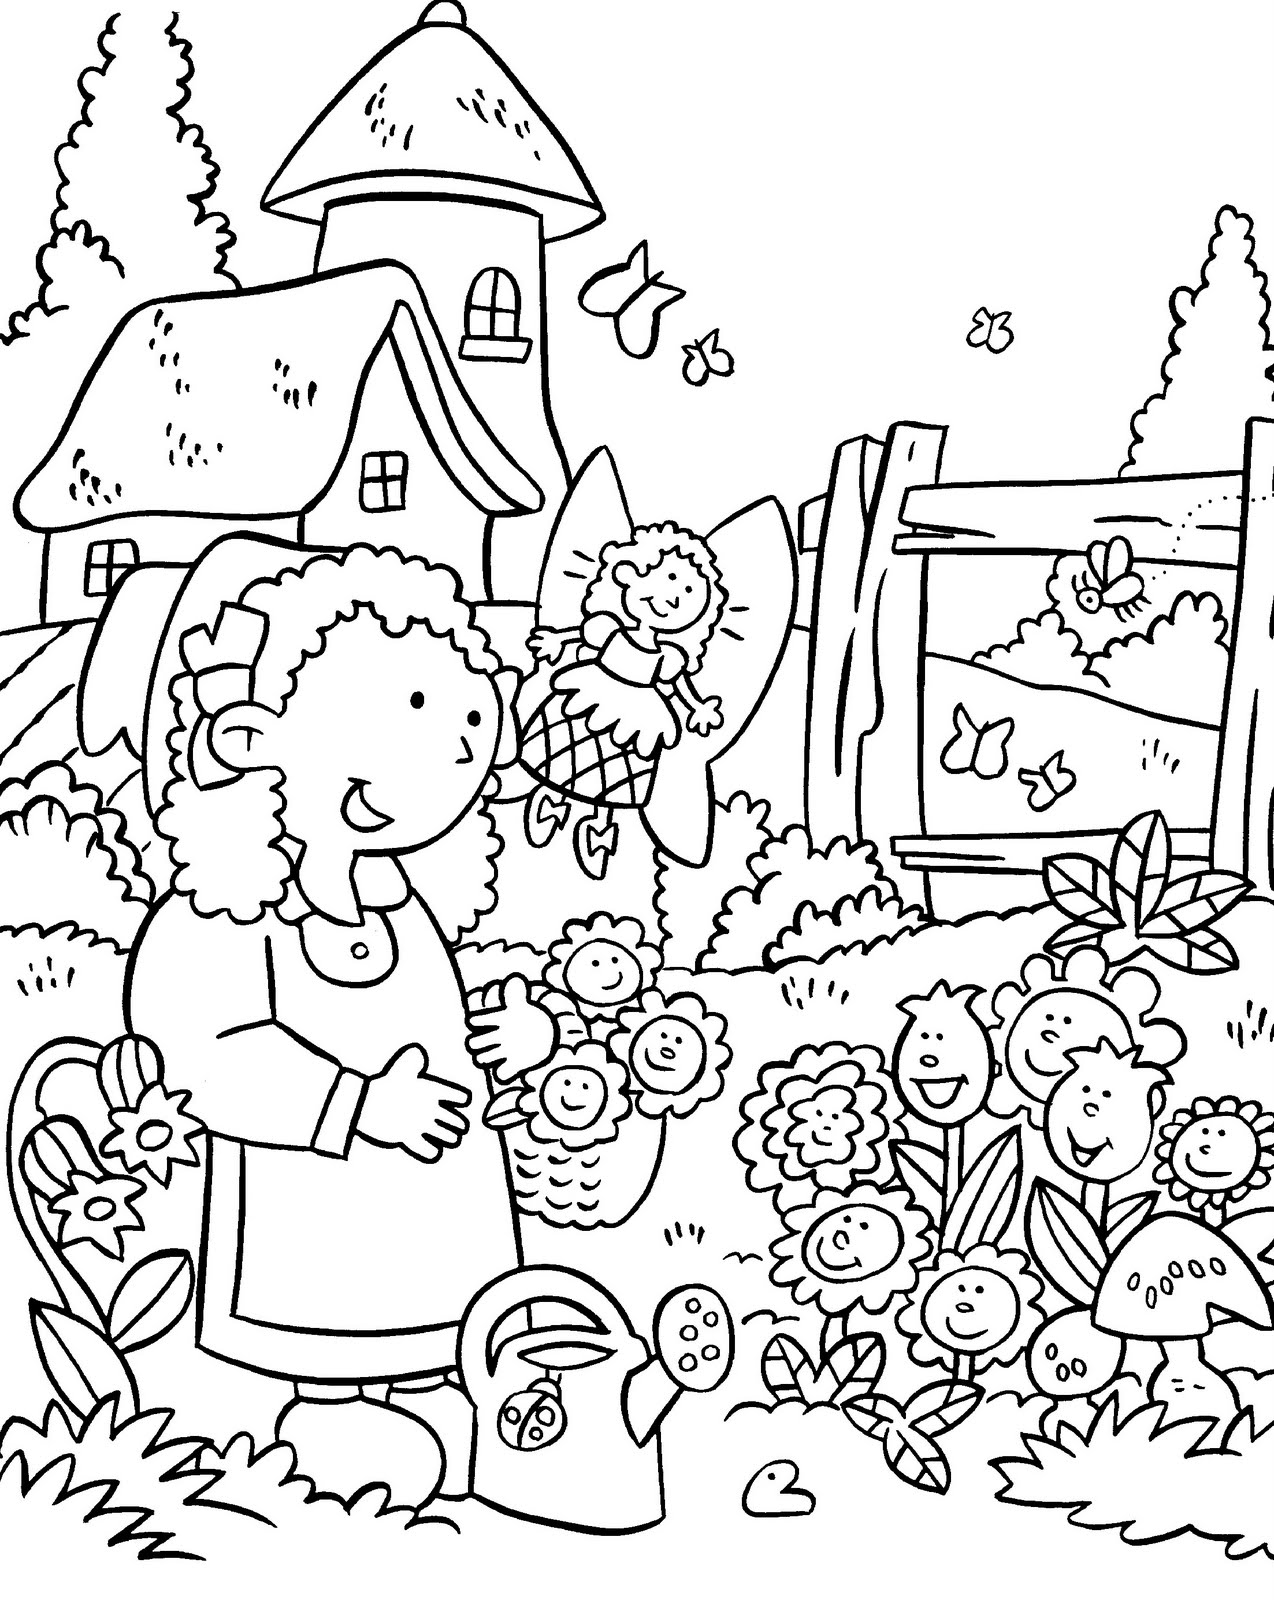 Summer garden coloring pages - Colouring Sheets In The Night Garden Anne 2bstory 2bcoloring 2b03 Colouring Sheets In